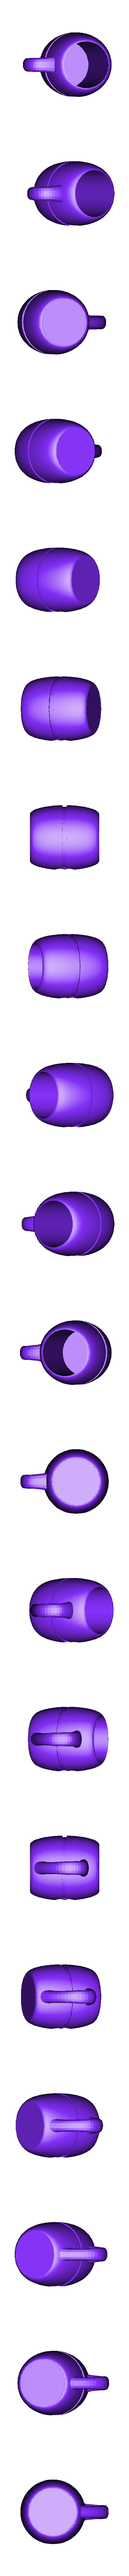 Tasse Pokeball ~ Brut.stl Download free STL file Mug PokeBall • 3D printing design, LuliasMartch